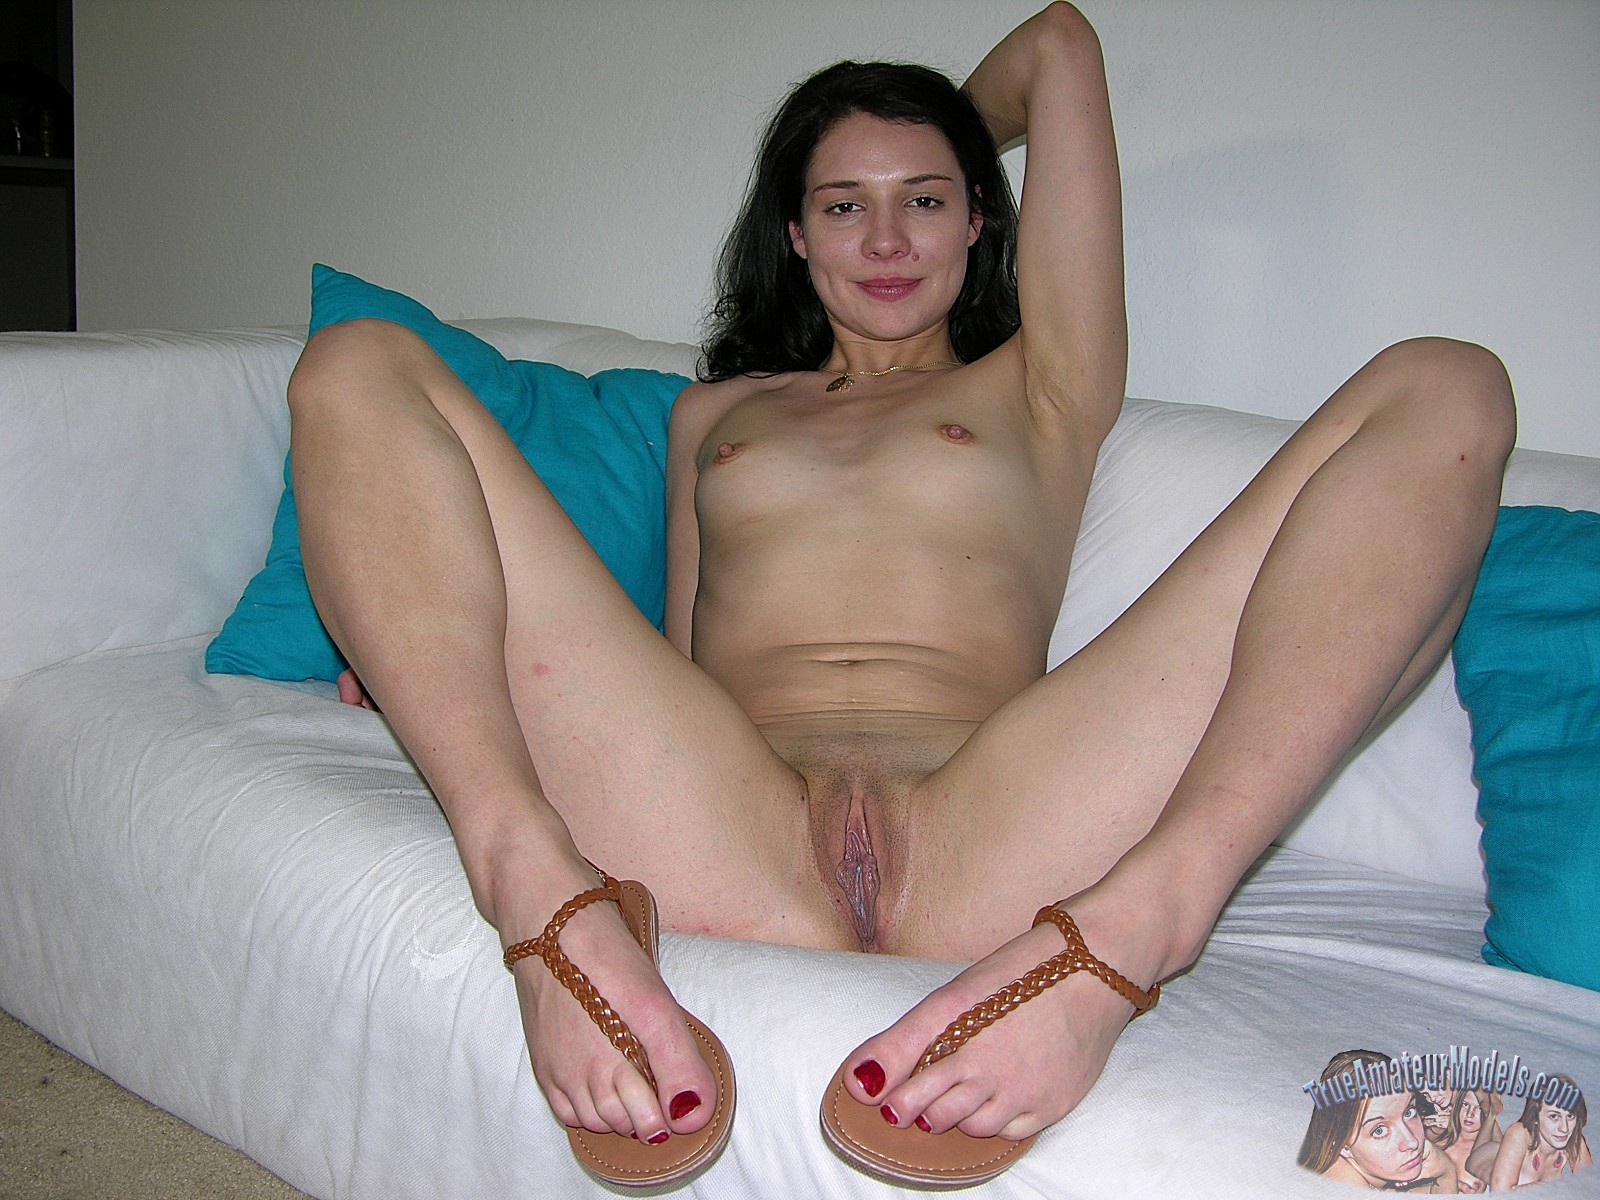 amature-nude-girls-sex-feet